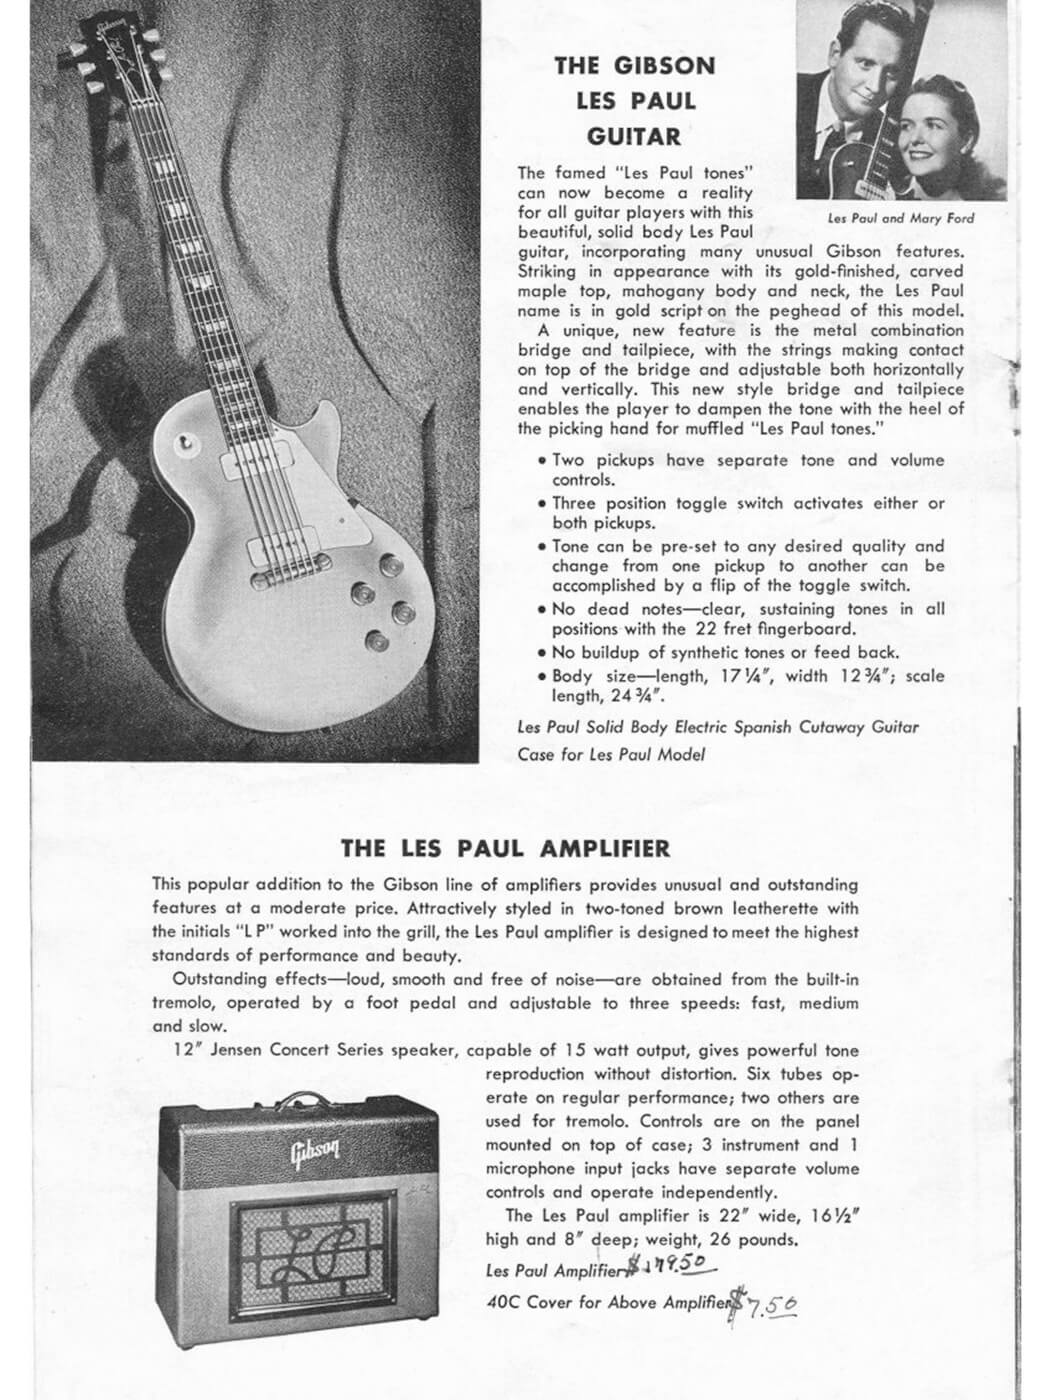 Gibson les paul history